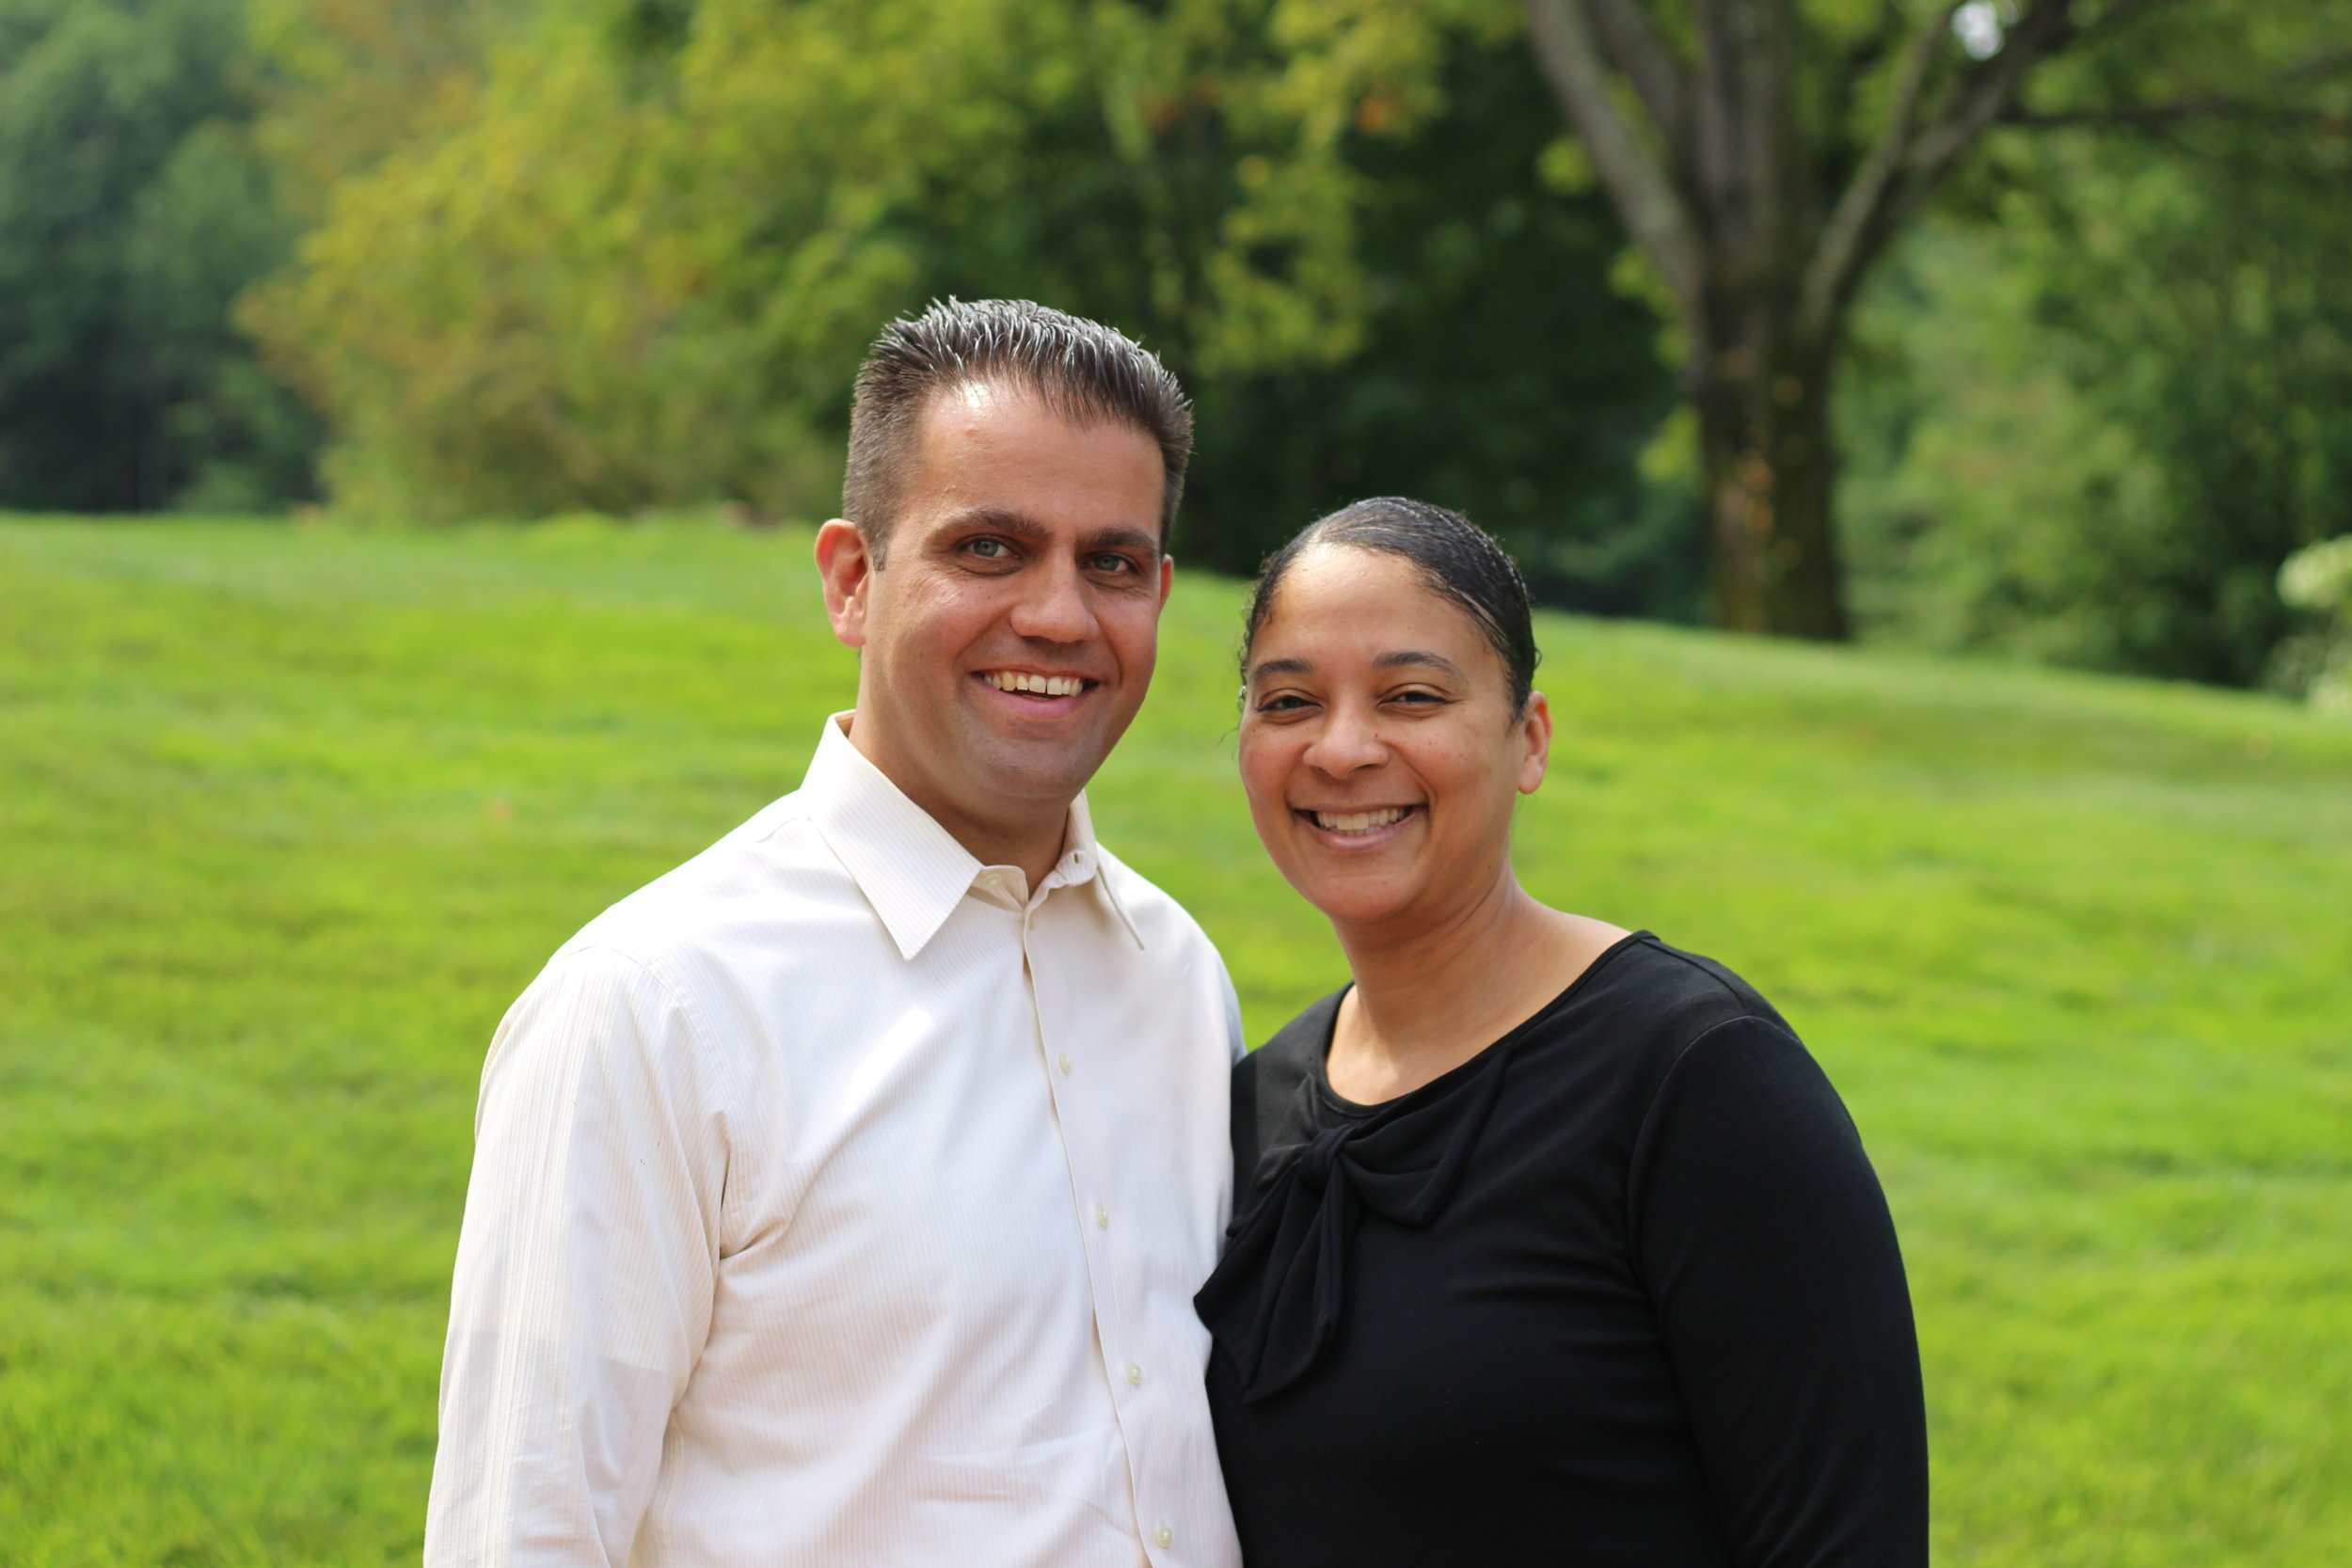 DISTRICT SECRETARY - Jon & Indira Petoskey